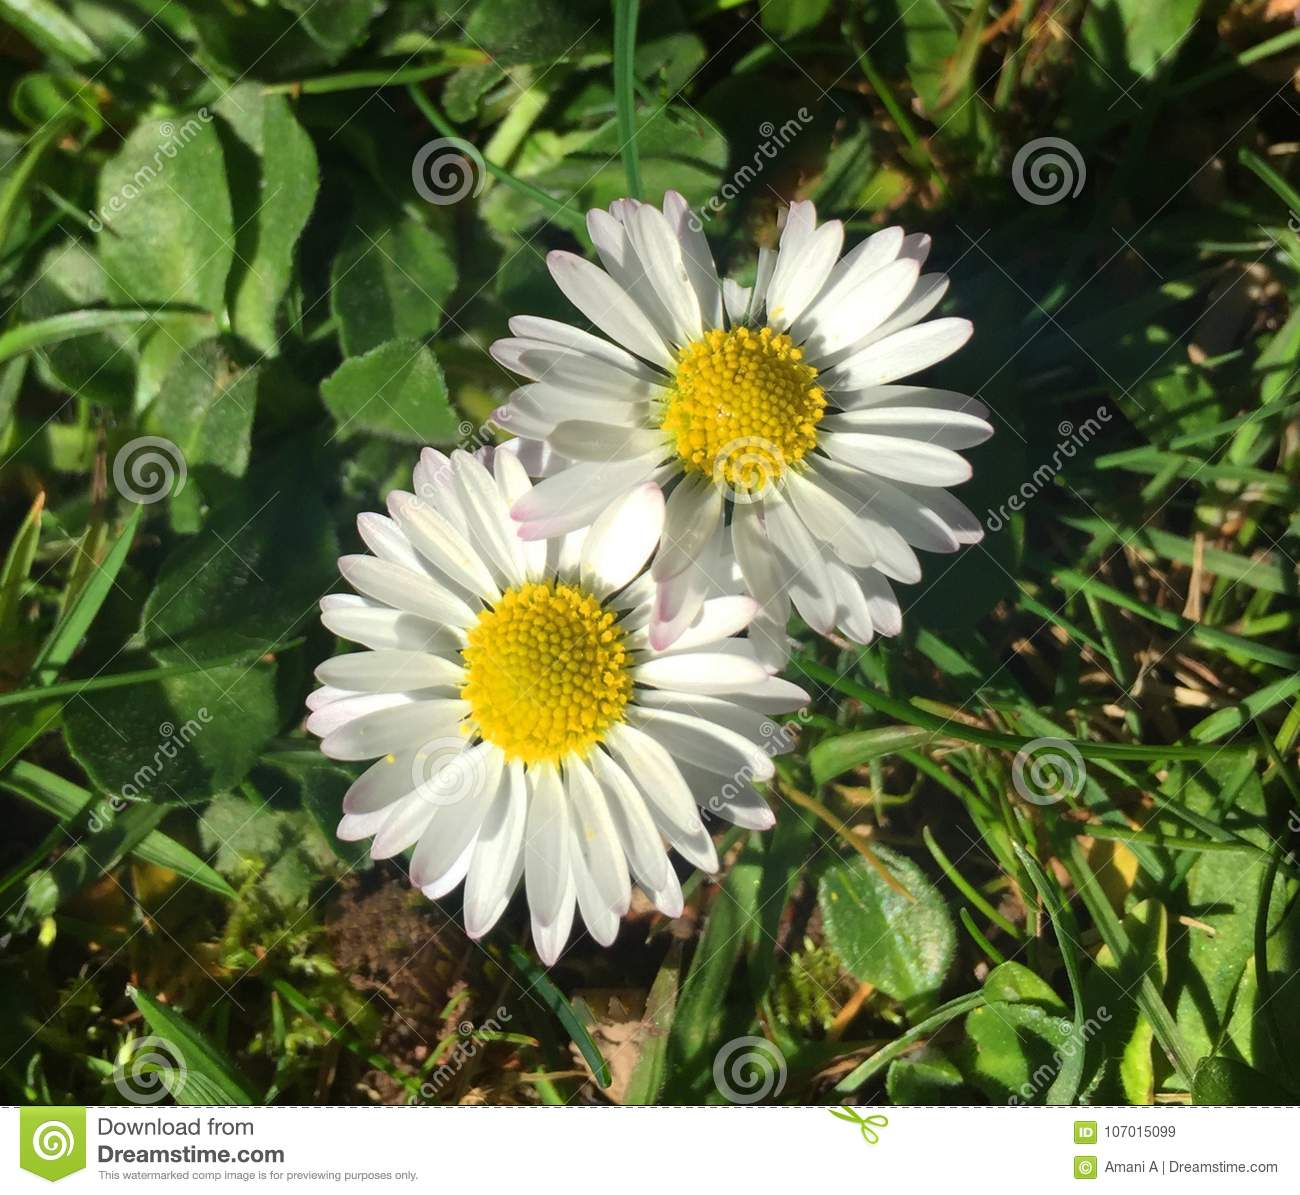 Two Daisy Flowers In Sunlight Interlocking Petals Stock Image